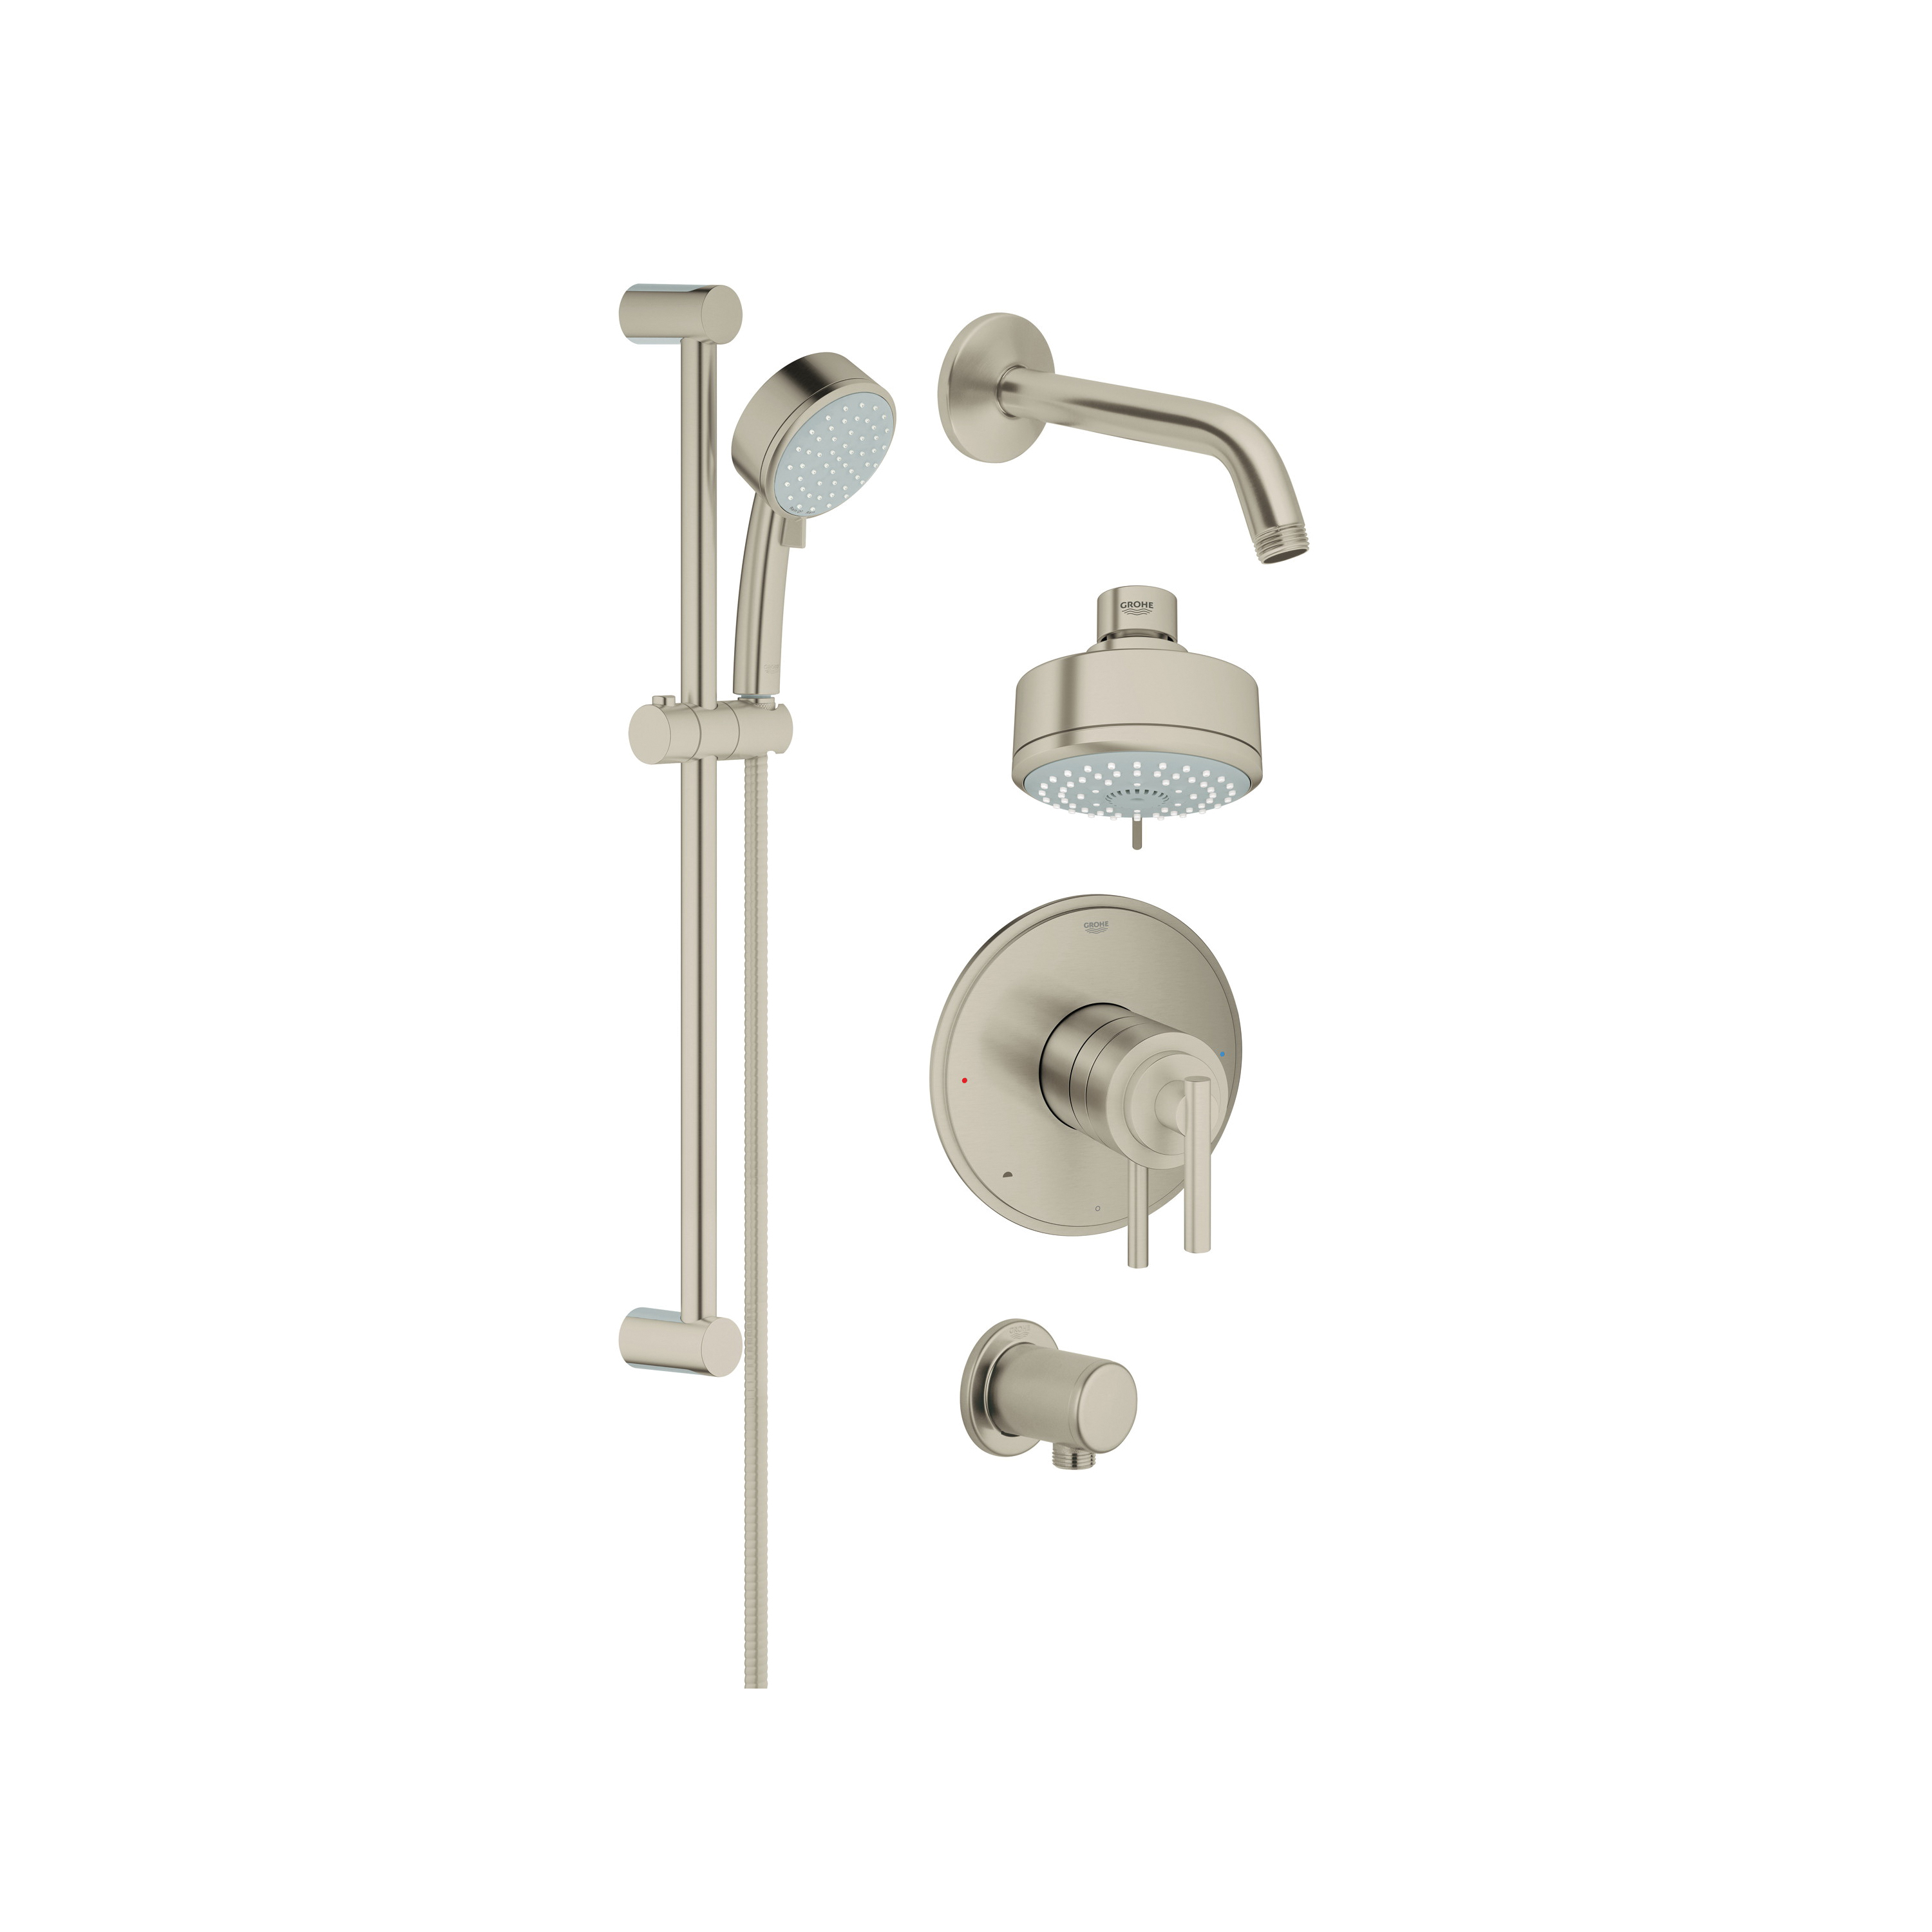 GROHE 35055EN0 GrohFlex™ Pressure Balance Valve Shower Set With DreamSpray Technology, Multi-Function Shower Head, 2 gpm, 69 in L Hose, StarLight® Chrome, Import